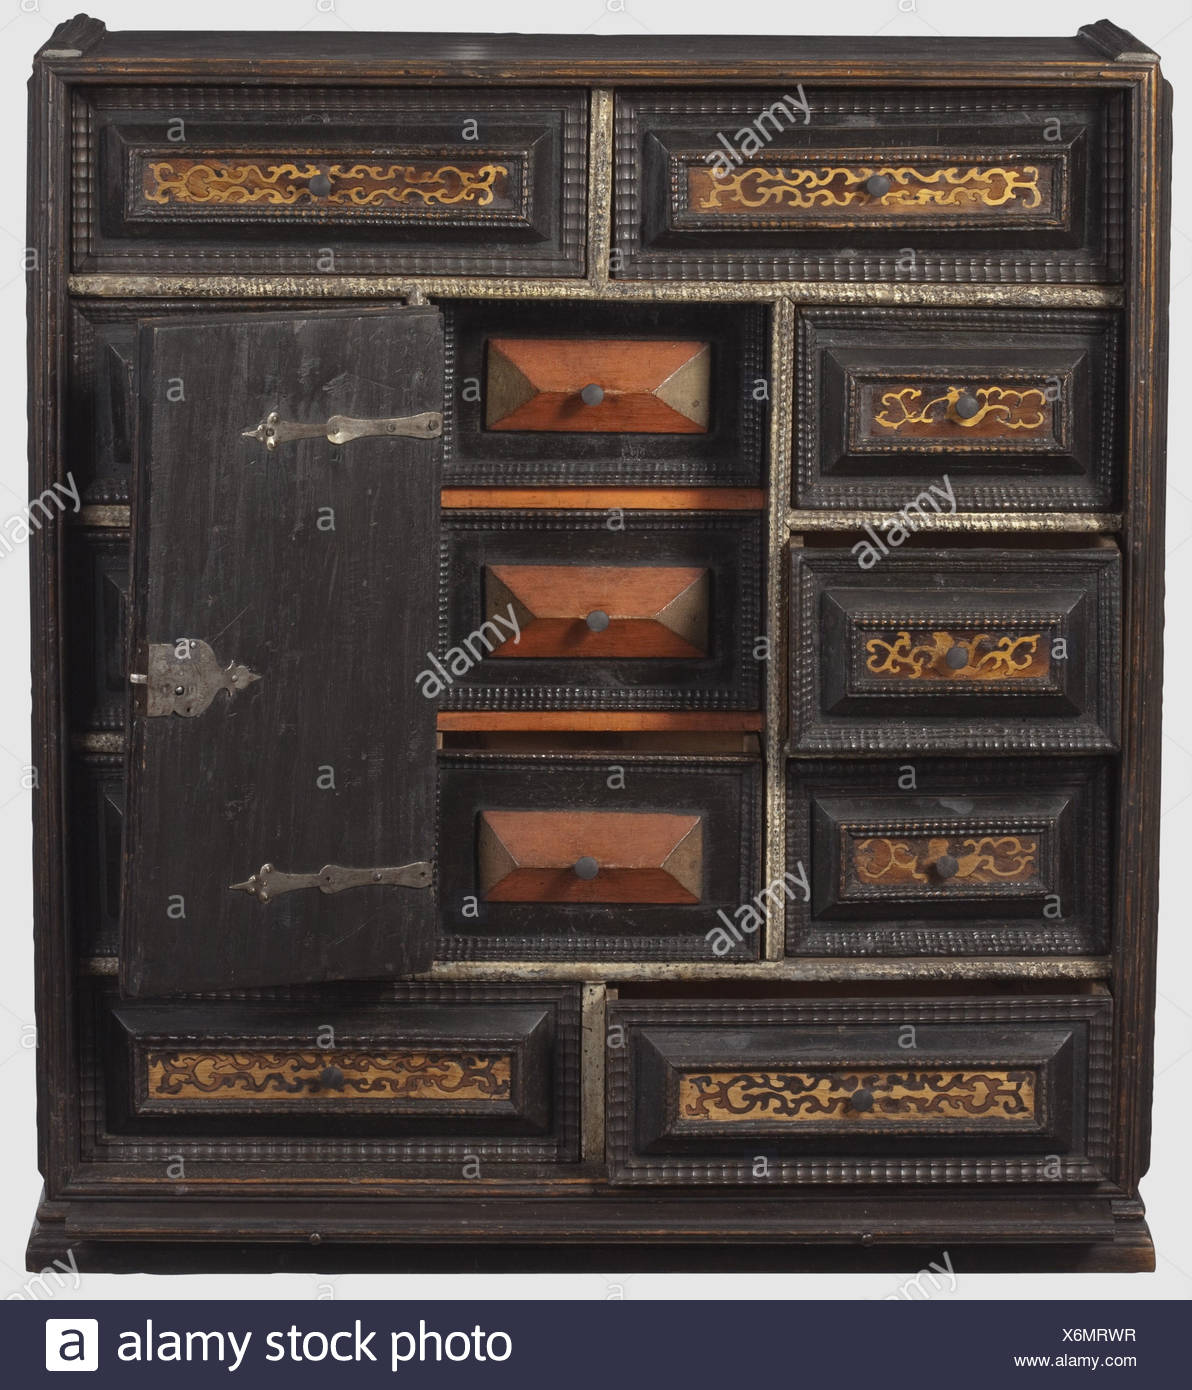 A German Cabinet 2nd Half Of The 17th Century A Tall